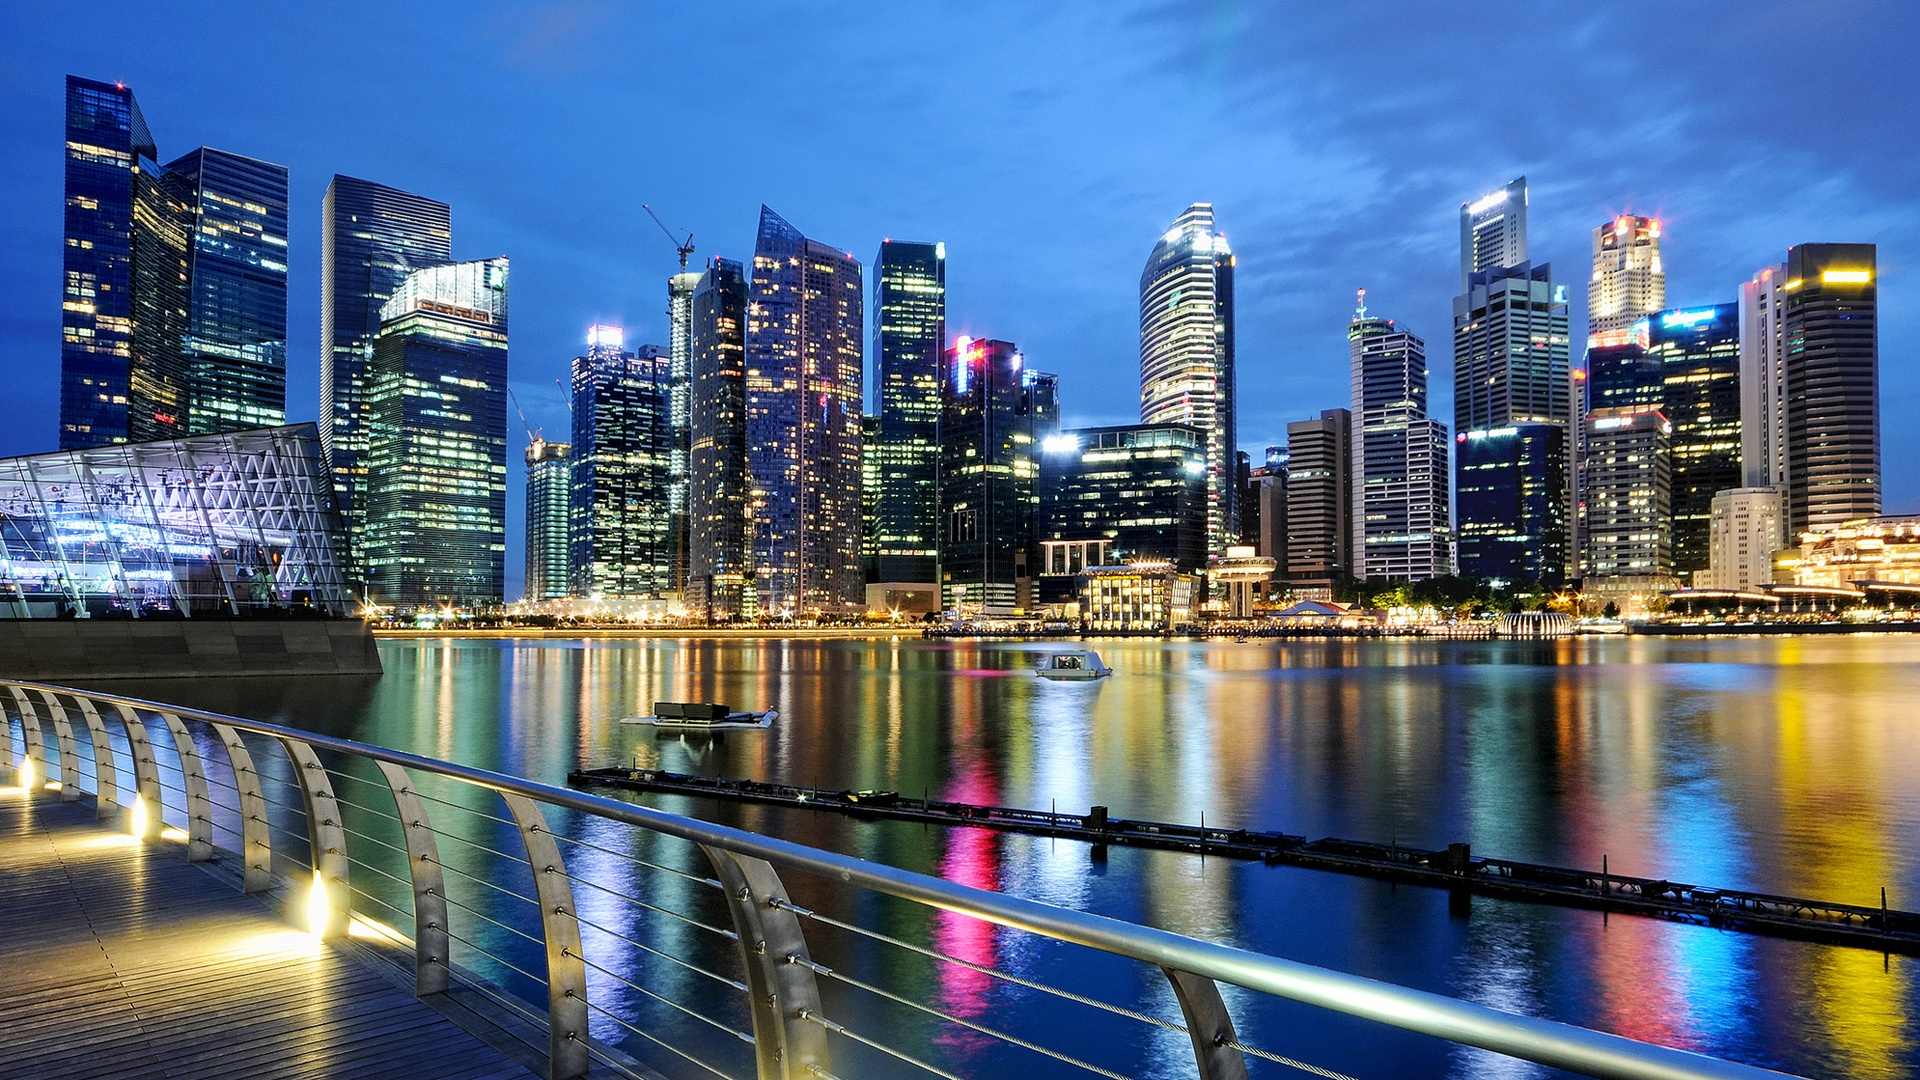 Singapore-beautiful-wallpaper-Hd-city-night-dark-night-light-water-buildings